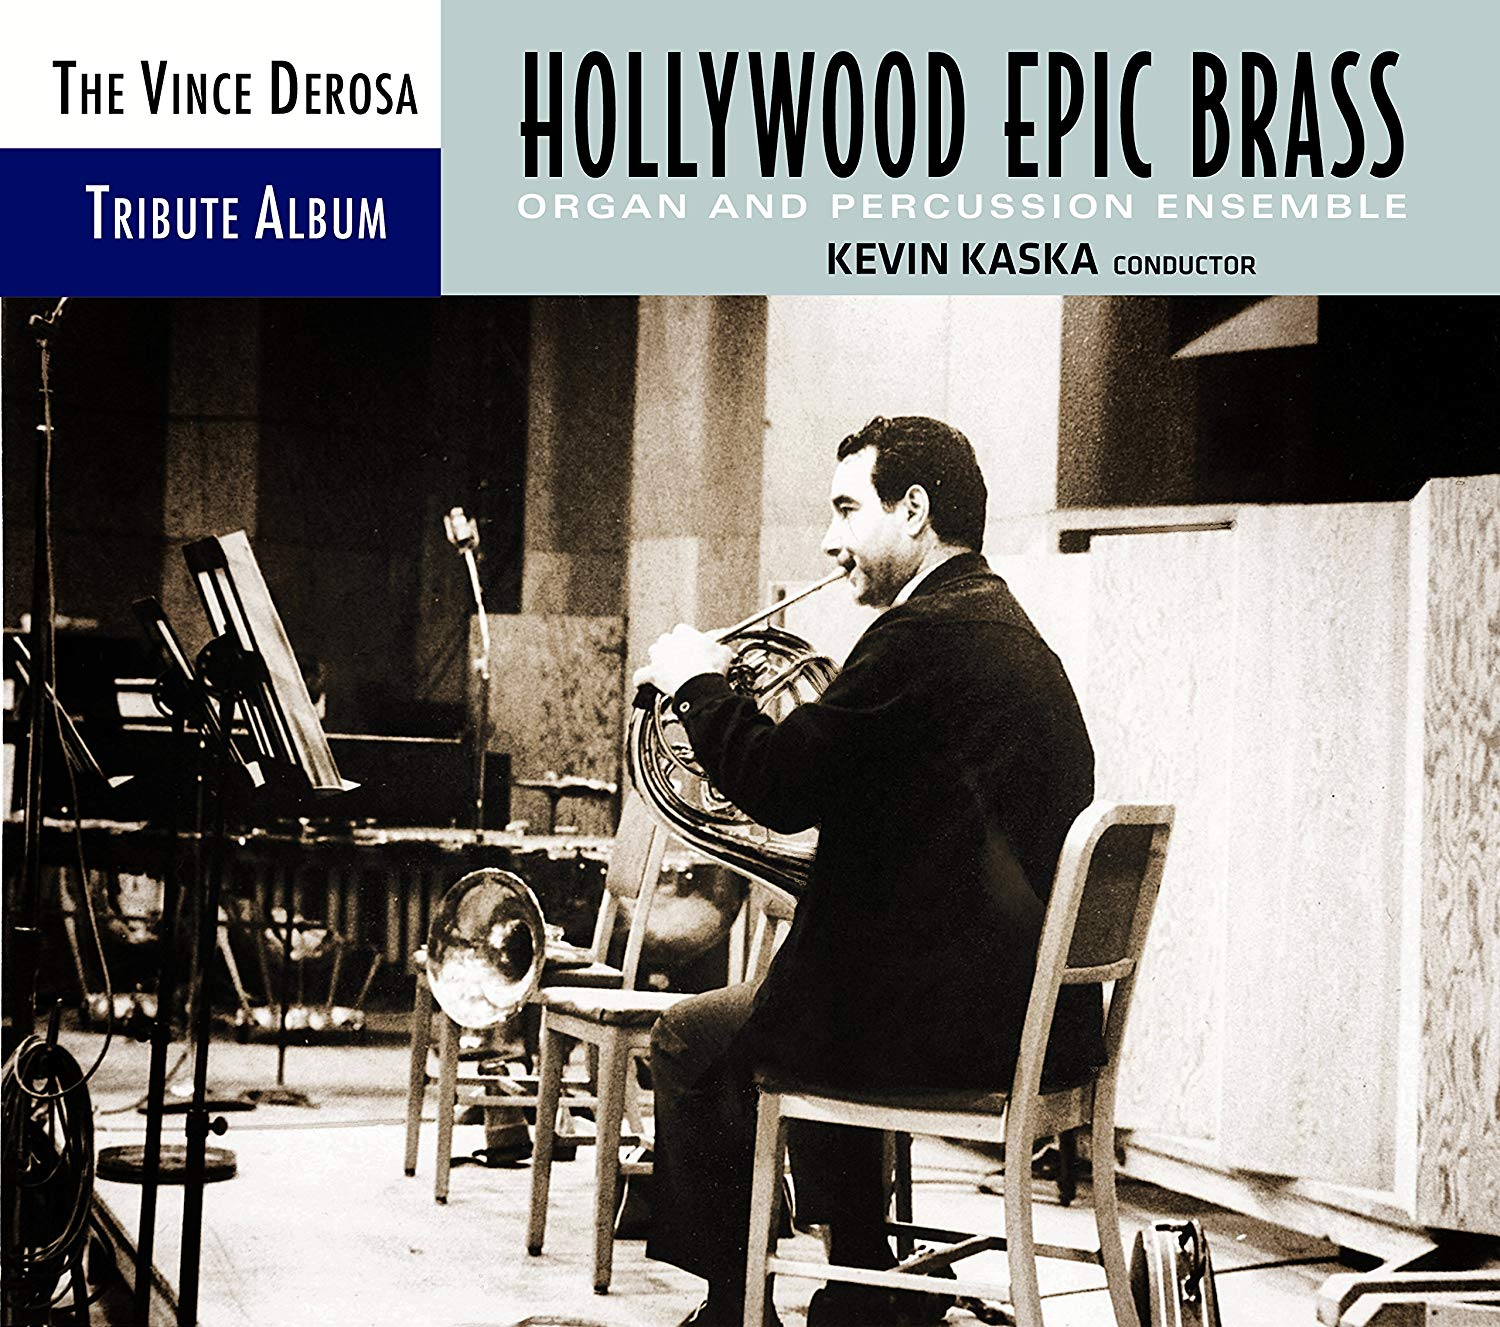 The Vince Derosa Tribute Album